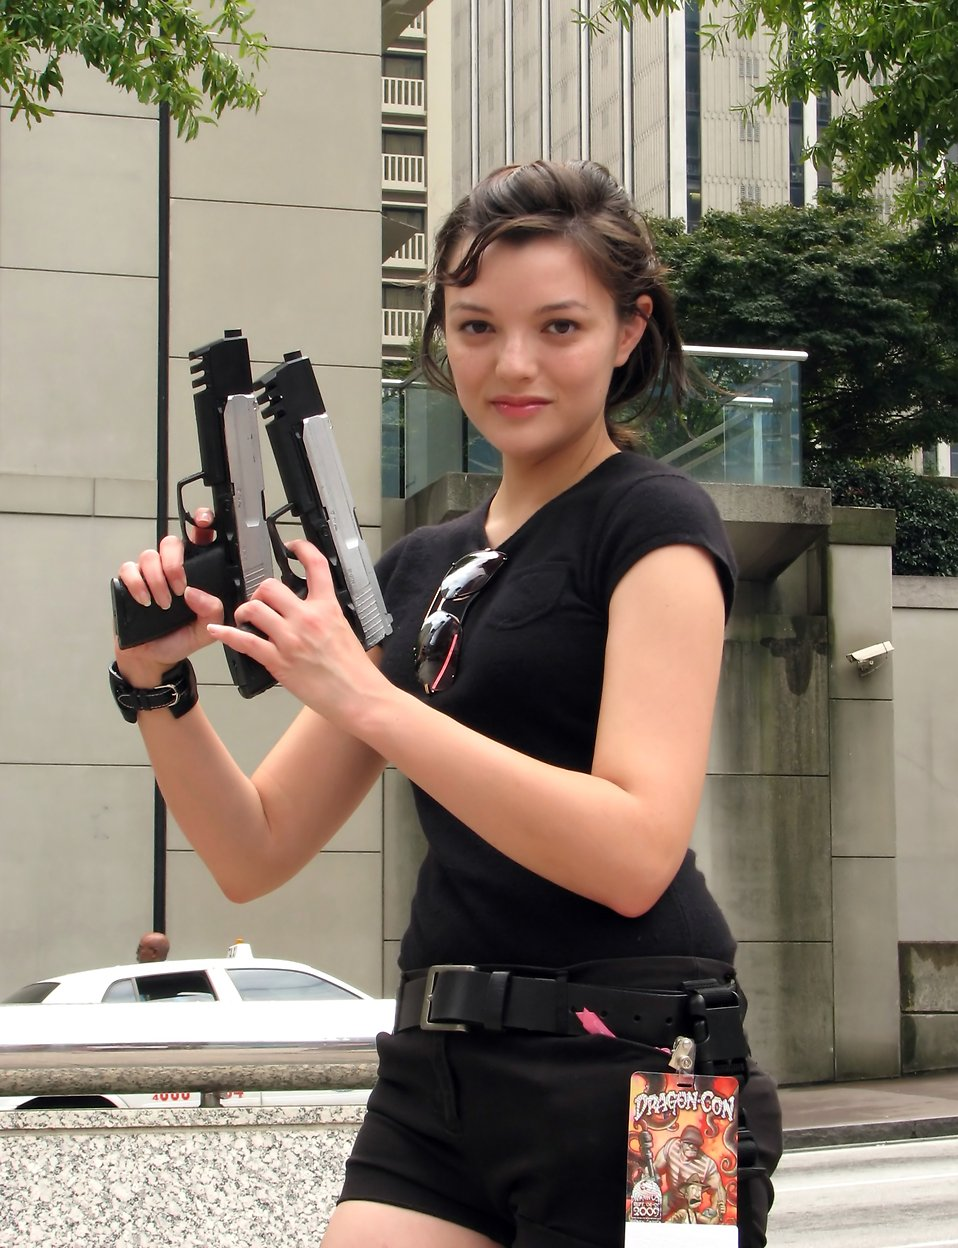 A beautiful girl in a Lara Croft costume at Dragoncon 2009 in Atlanta, Georgia : Free Stock Photo